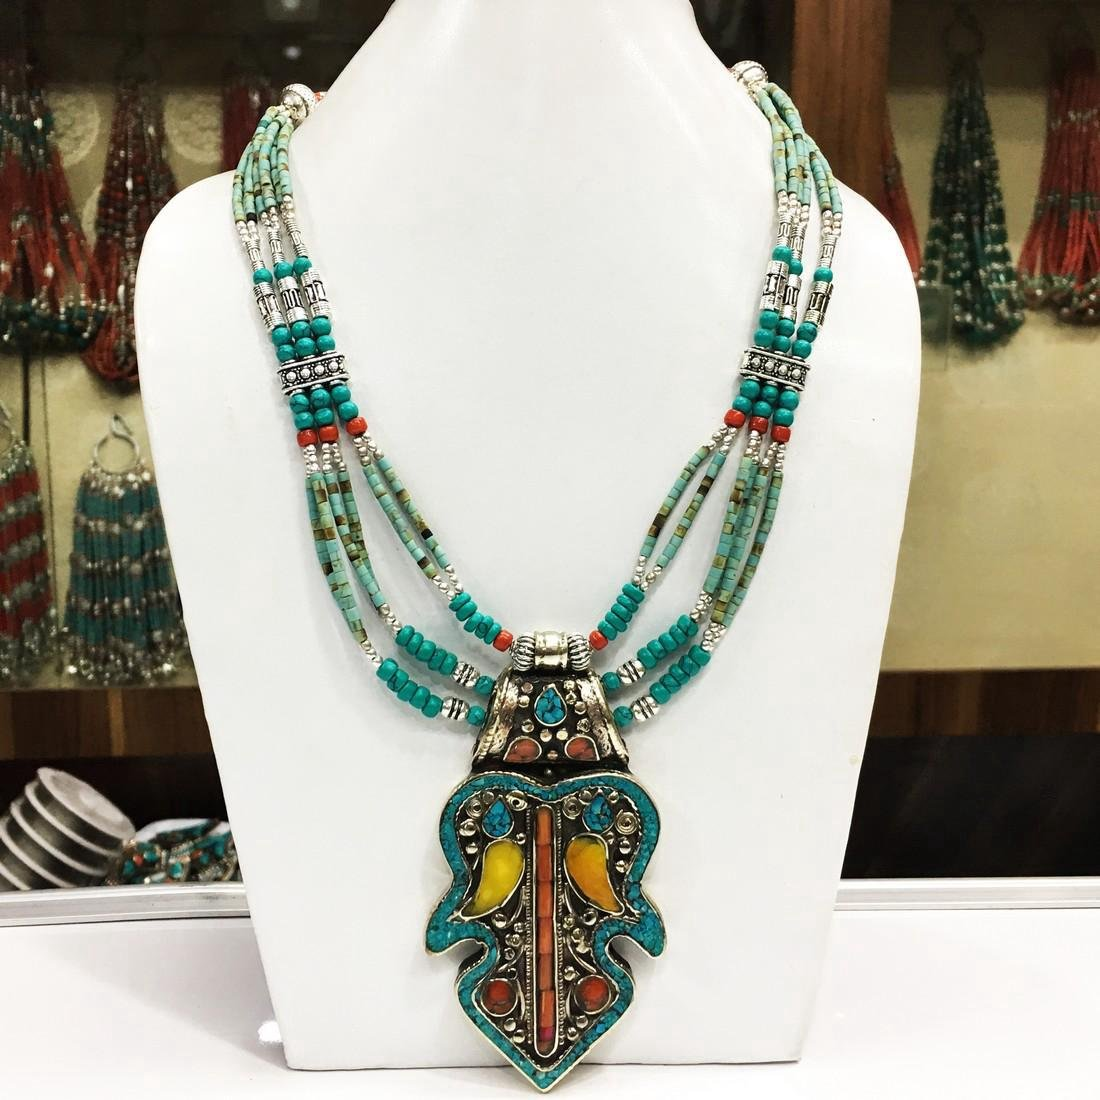 Vintage Tibetan Silver Turquoise & Coral Necklace - 2